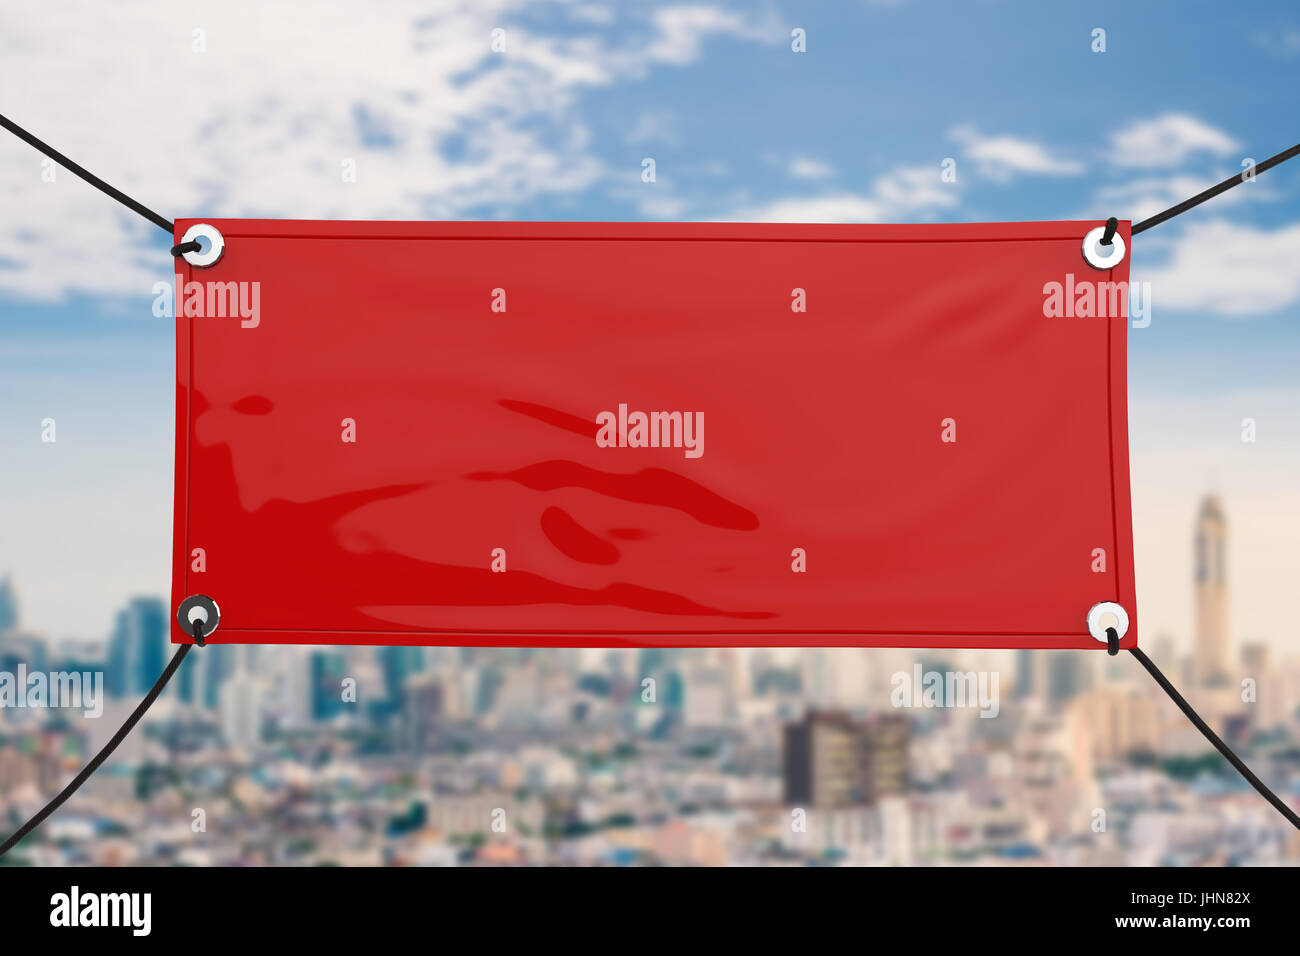 Red Blank Vinyl Banner Hanging With Rope Stock Photo Royalty Free - Blank vinyl banners